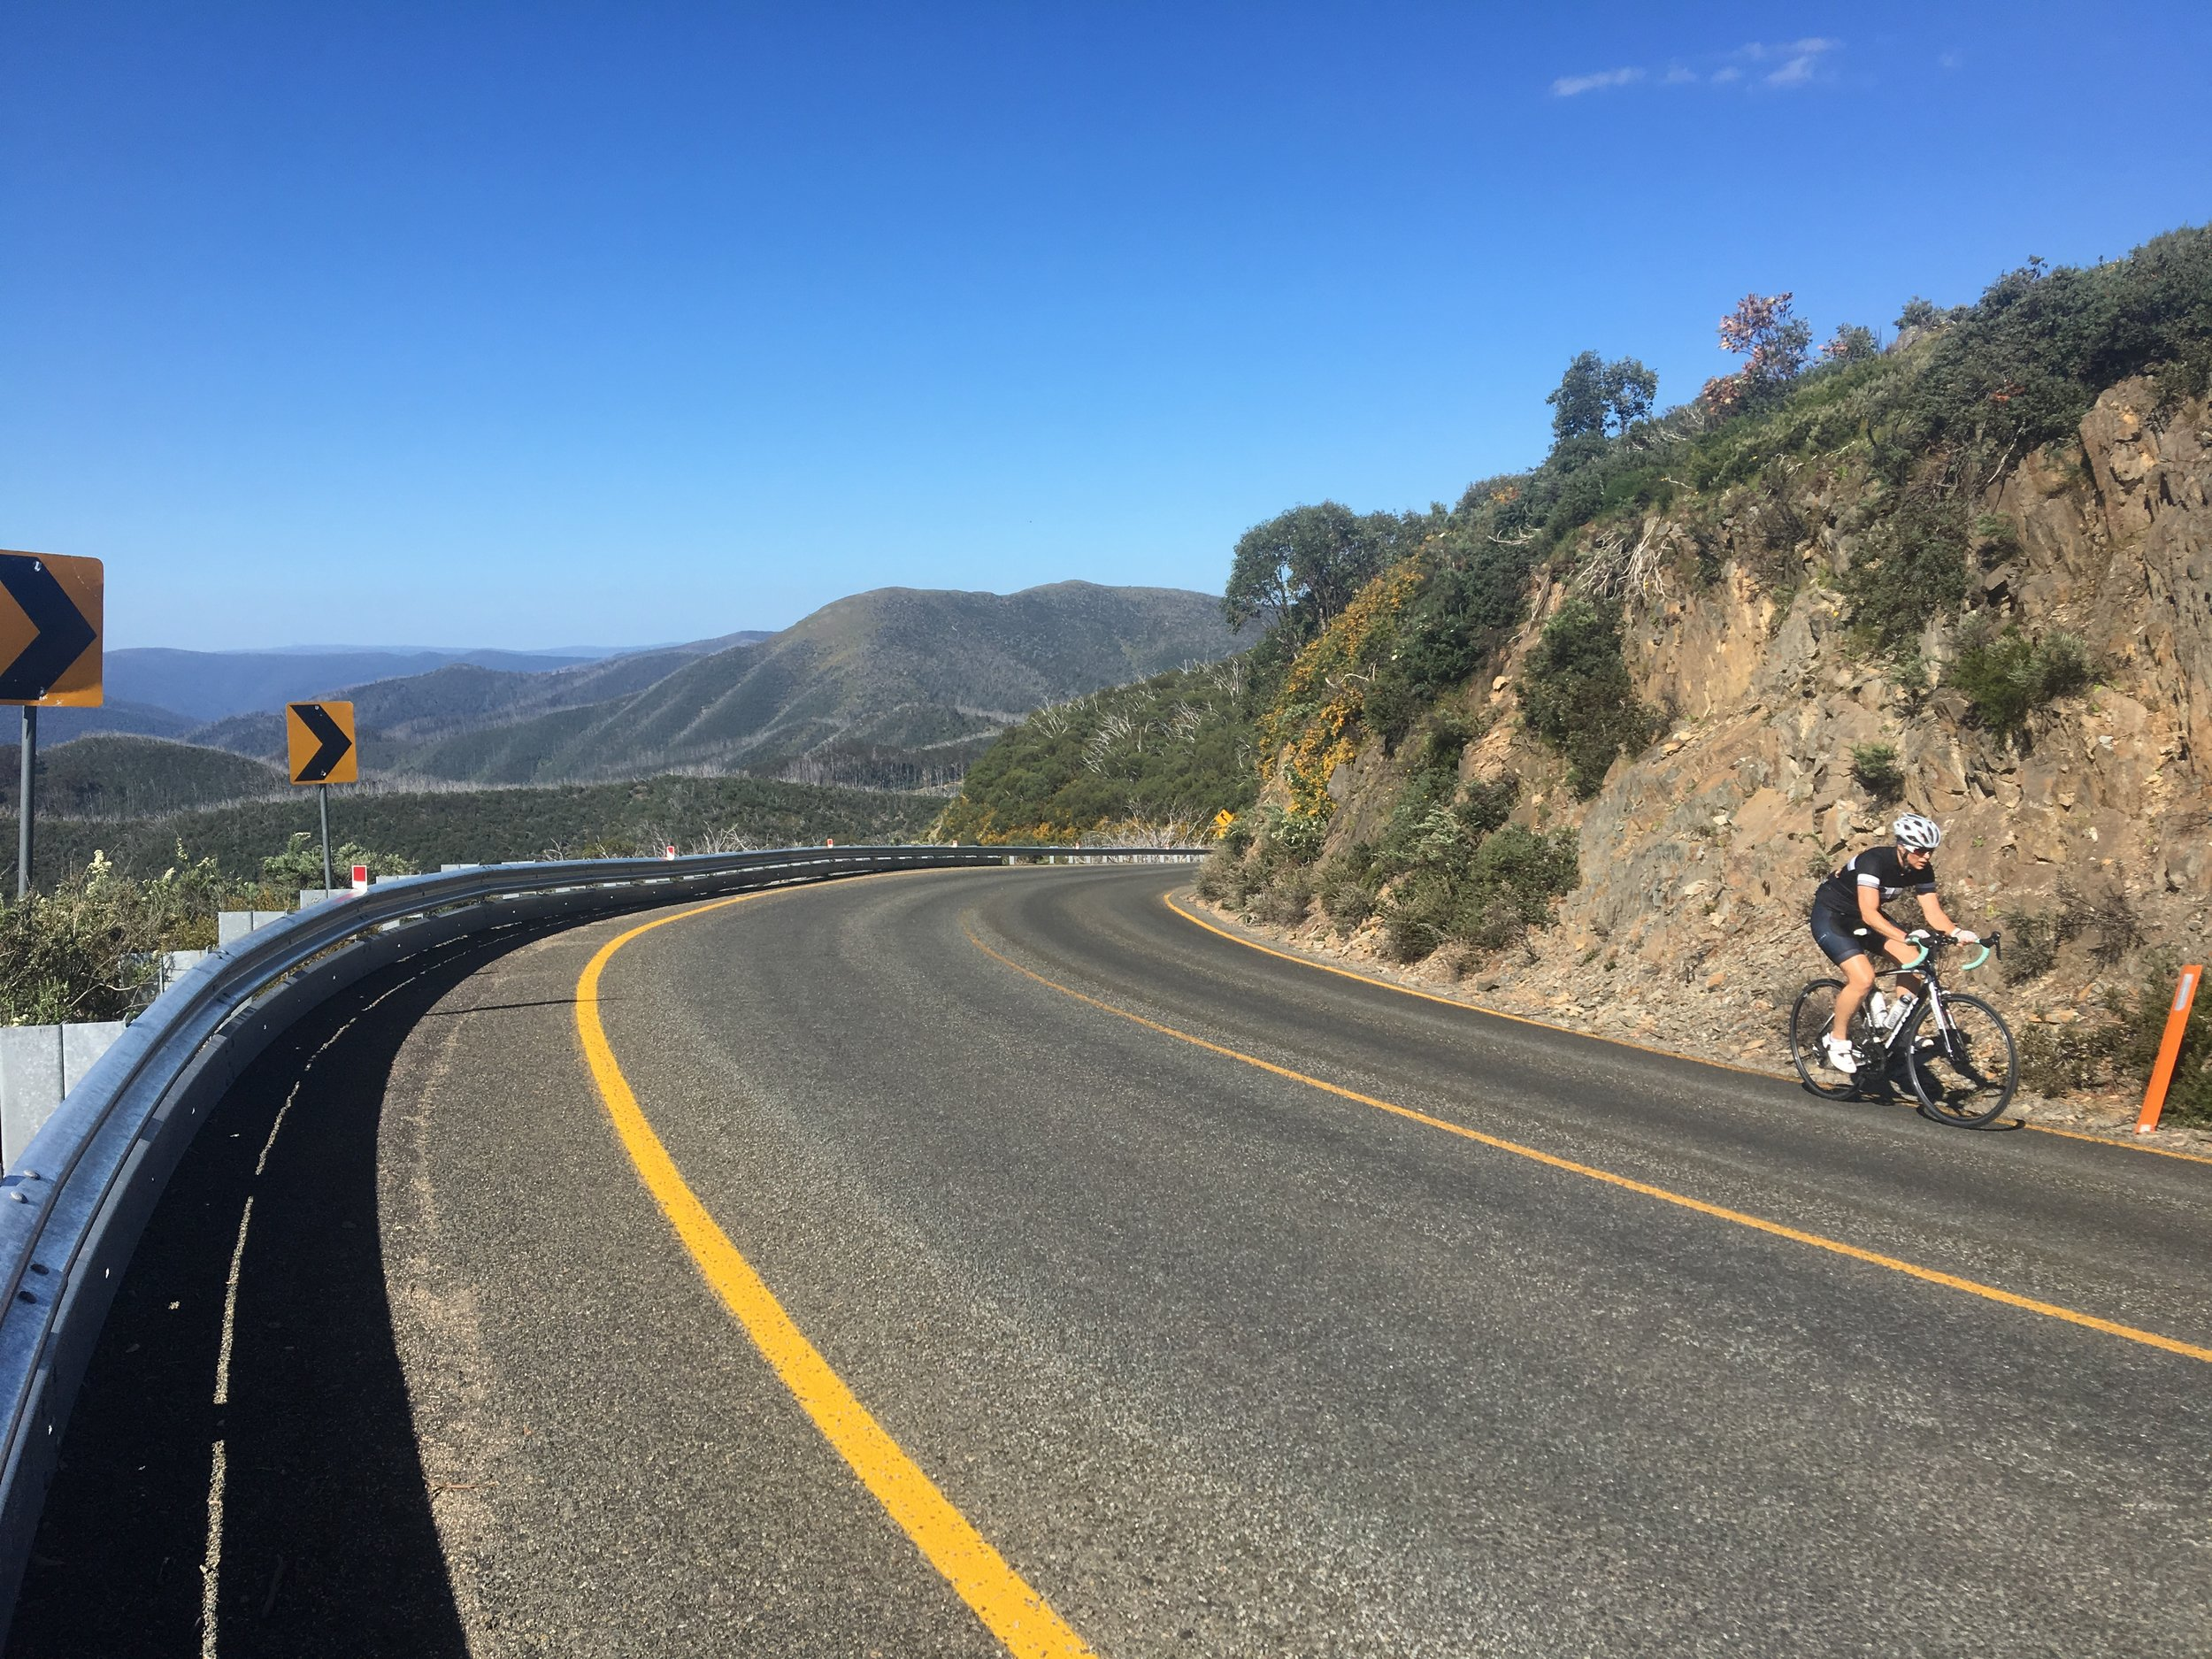 Gail 8km from the top of Mt Hotham